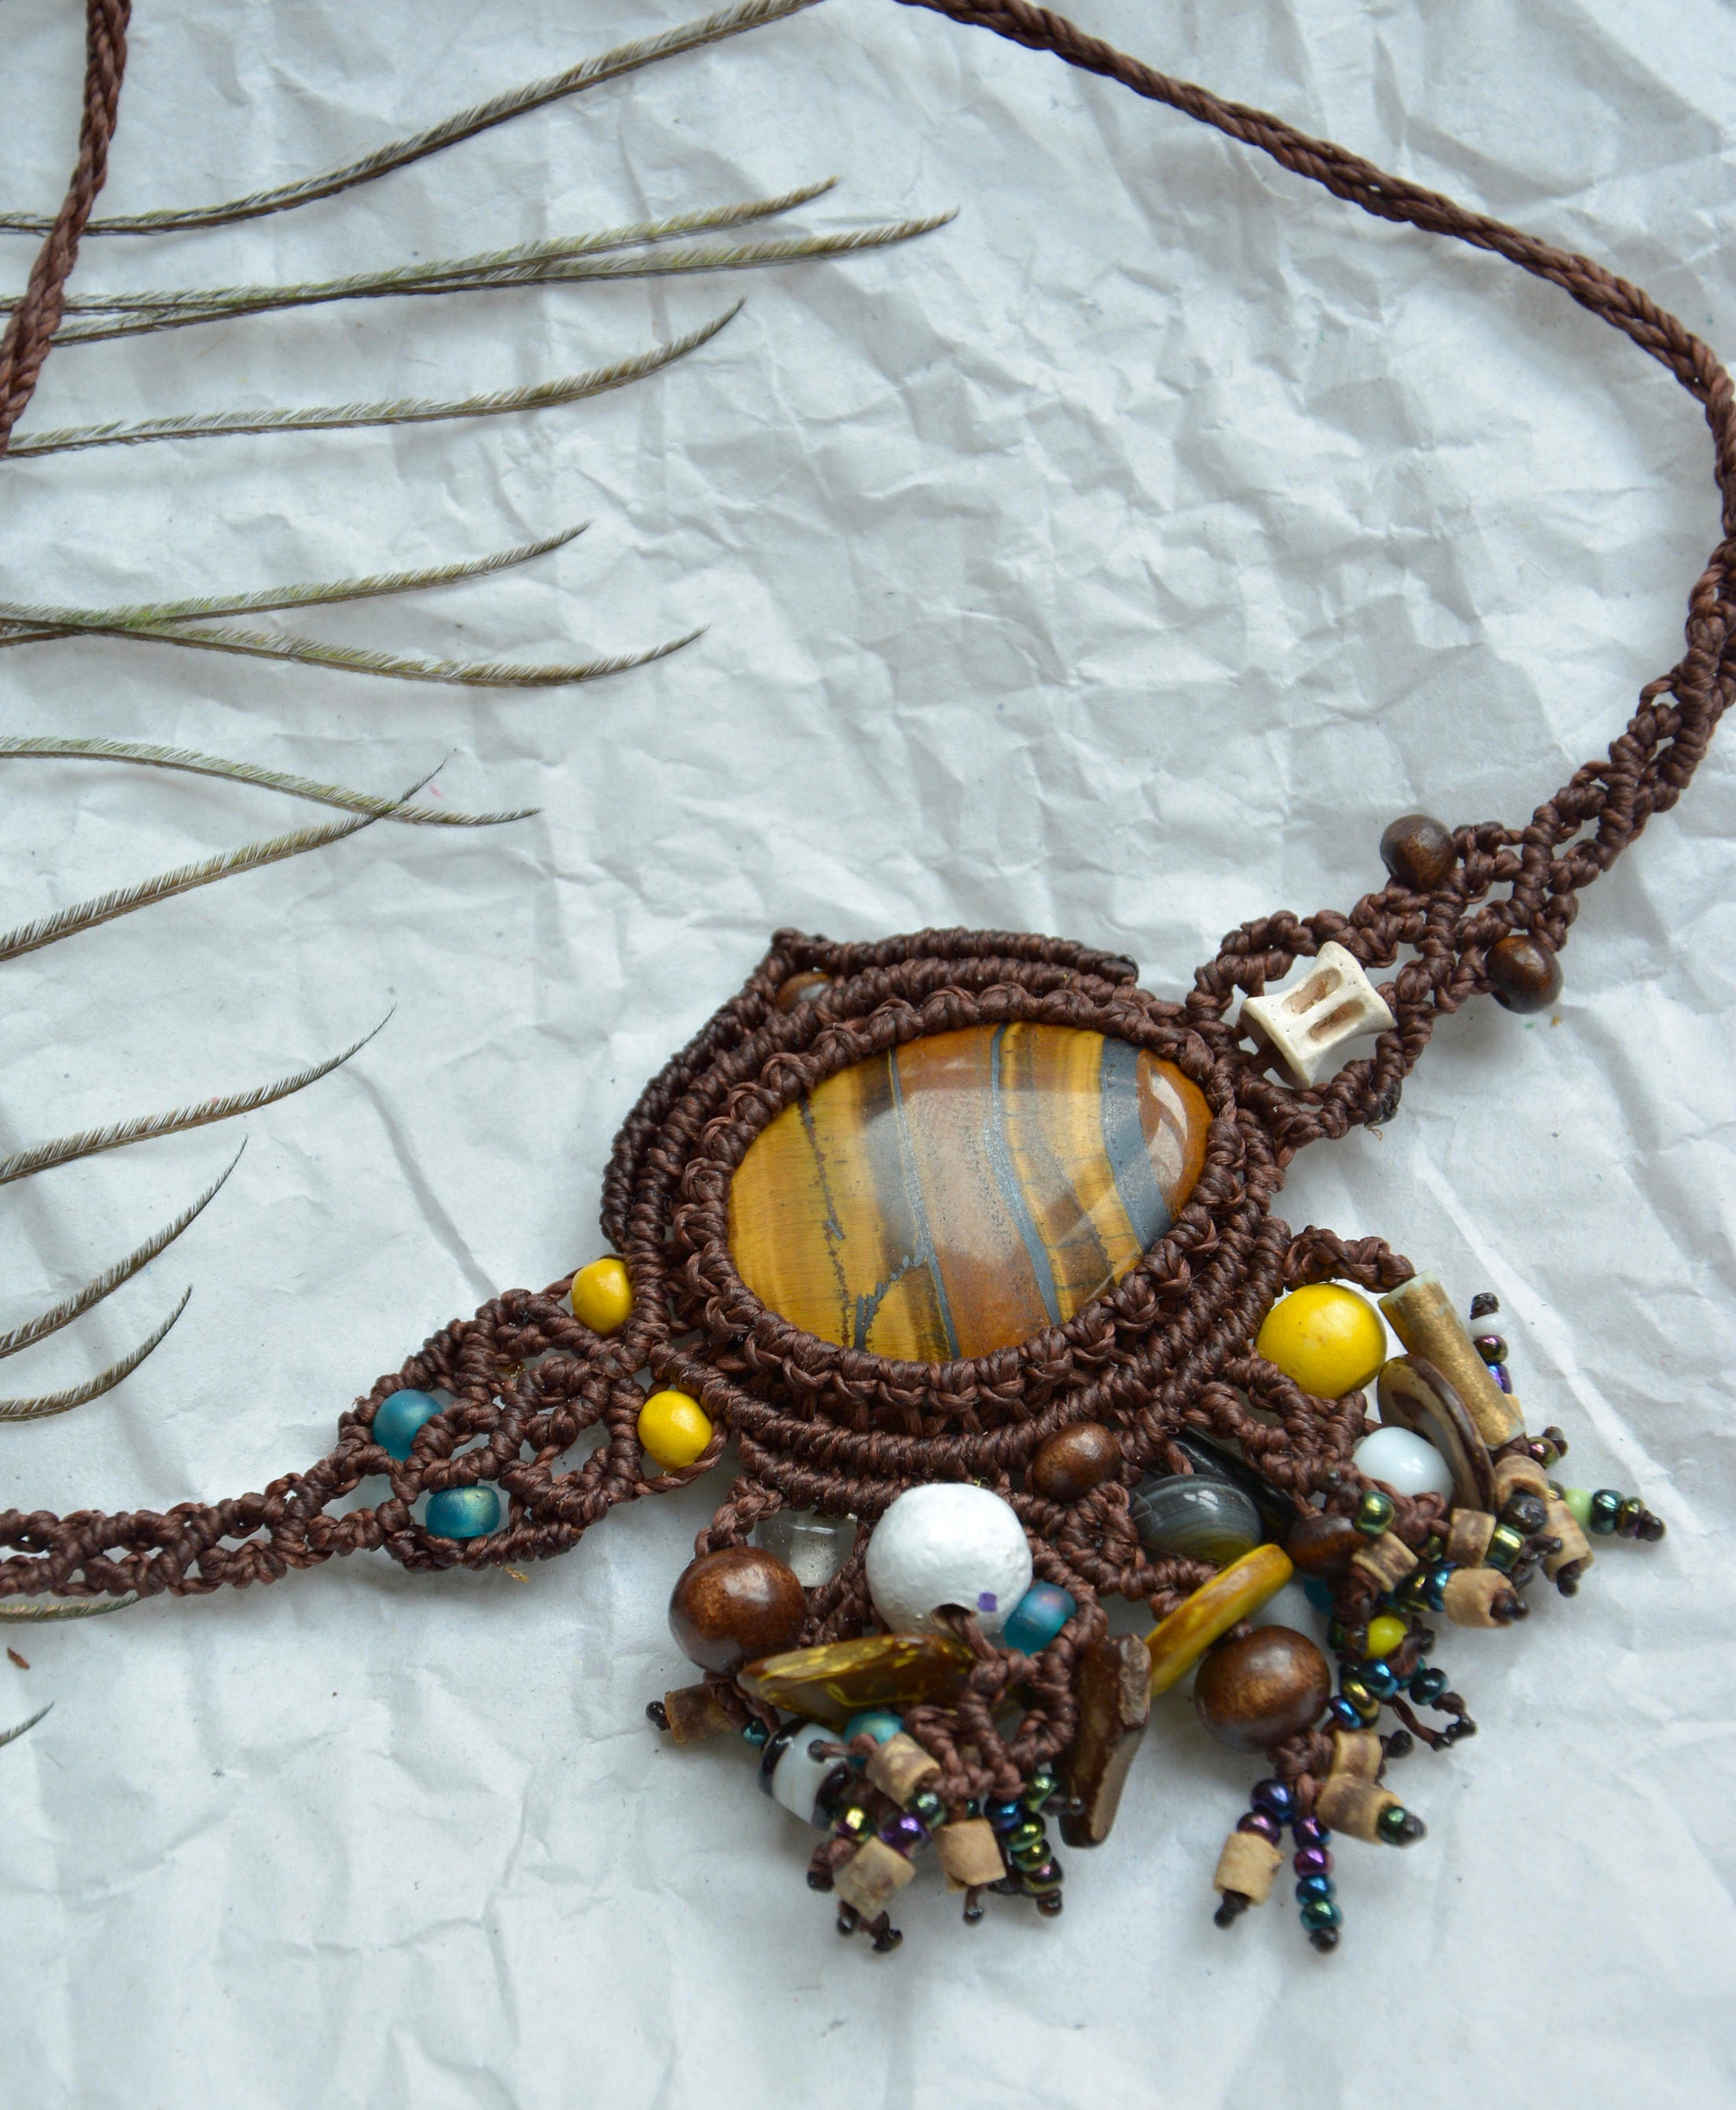 TIGERS EYE Macrame Necklace with Beads and Fish Bones Boho Tribal Handmade Hippie Jewellery Cabochon Necklace